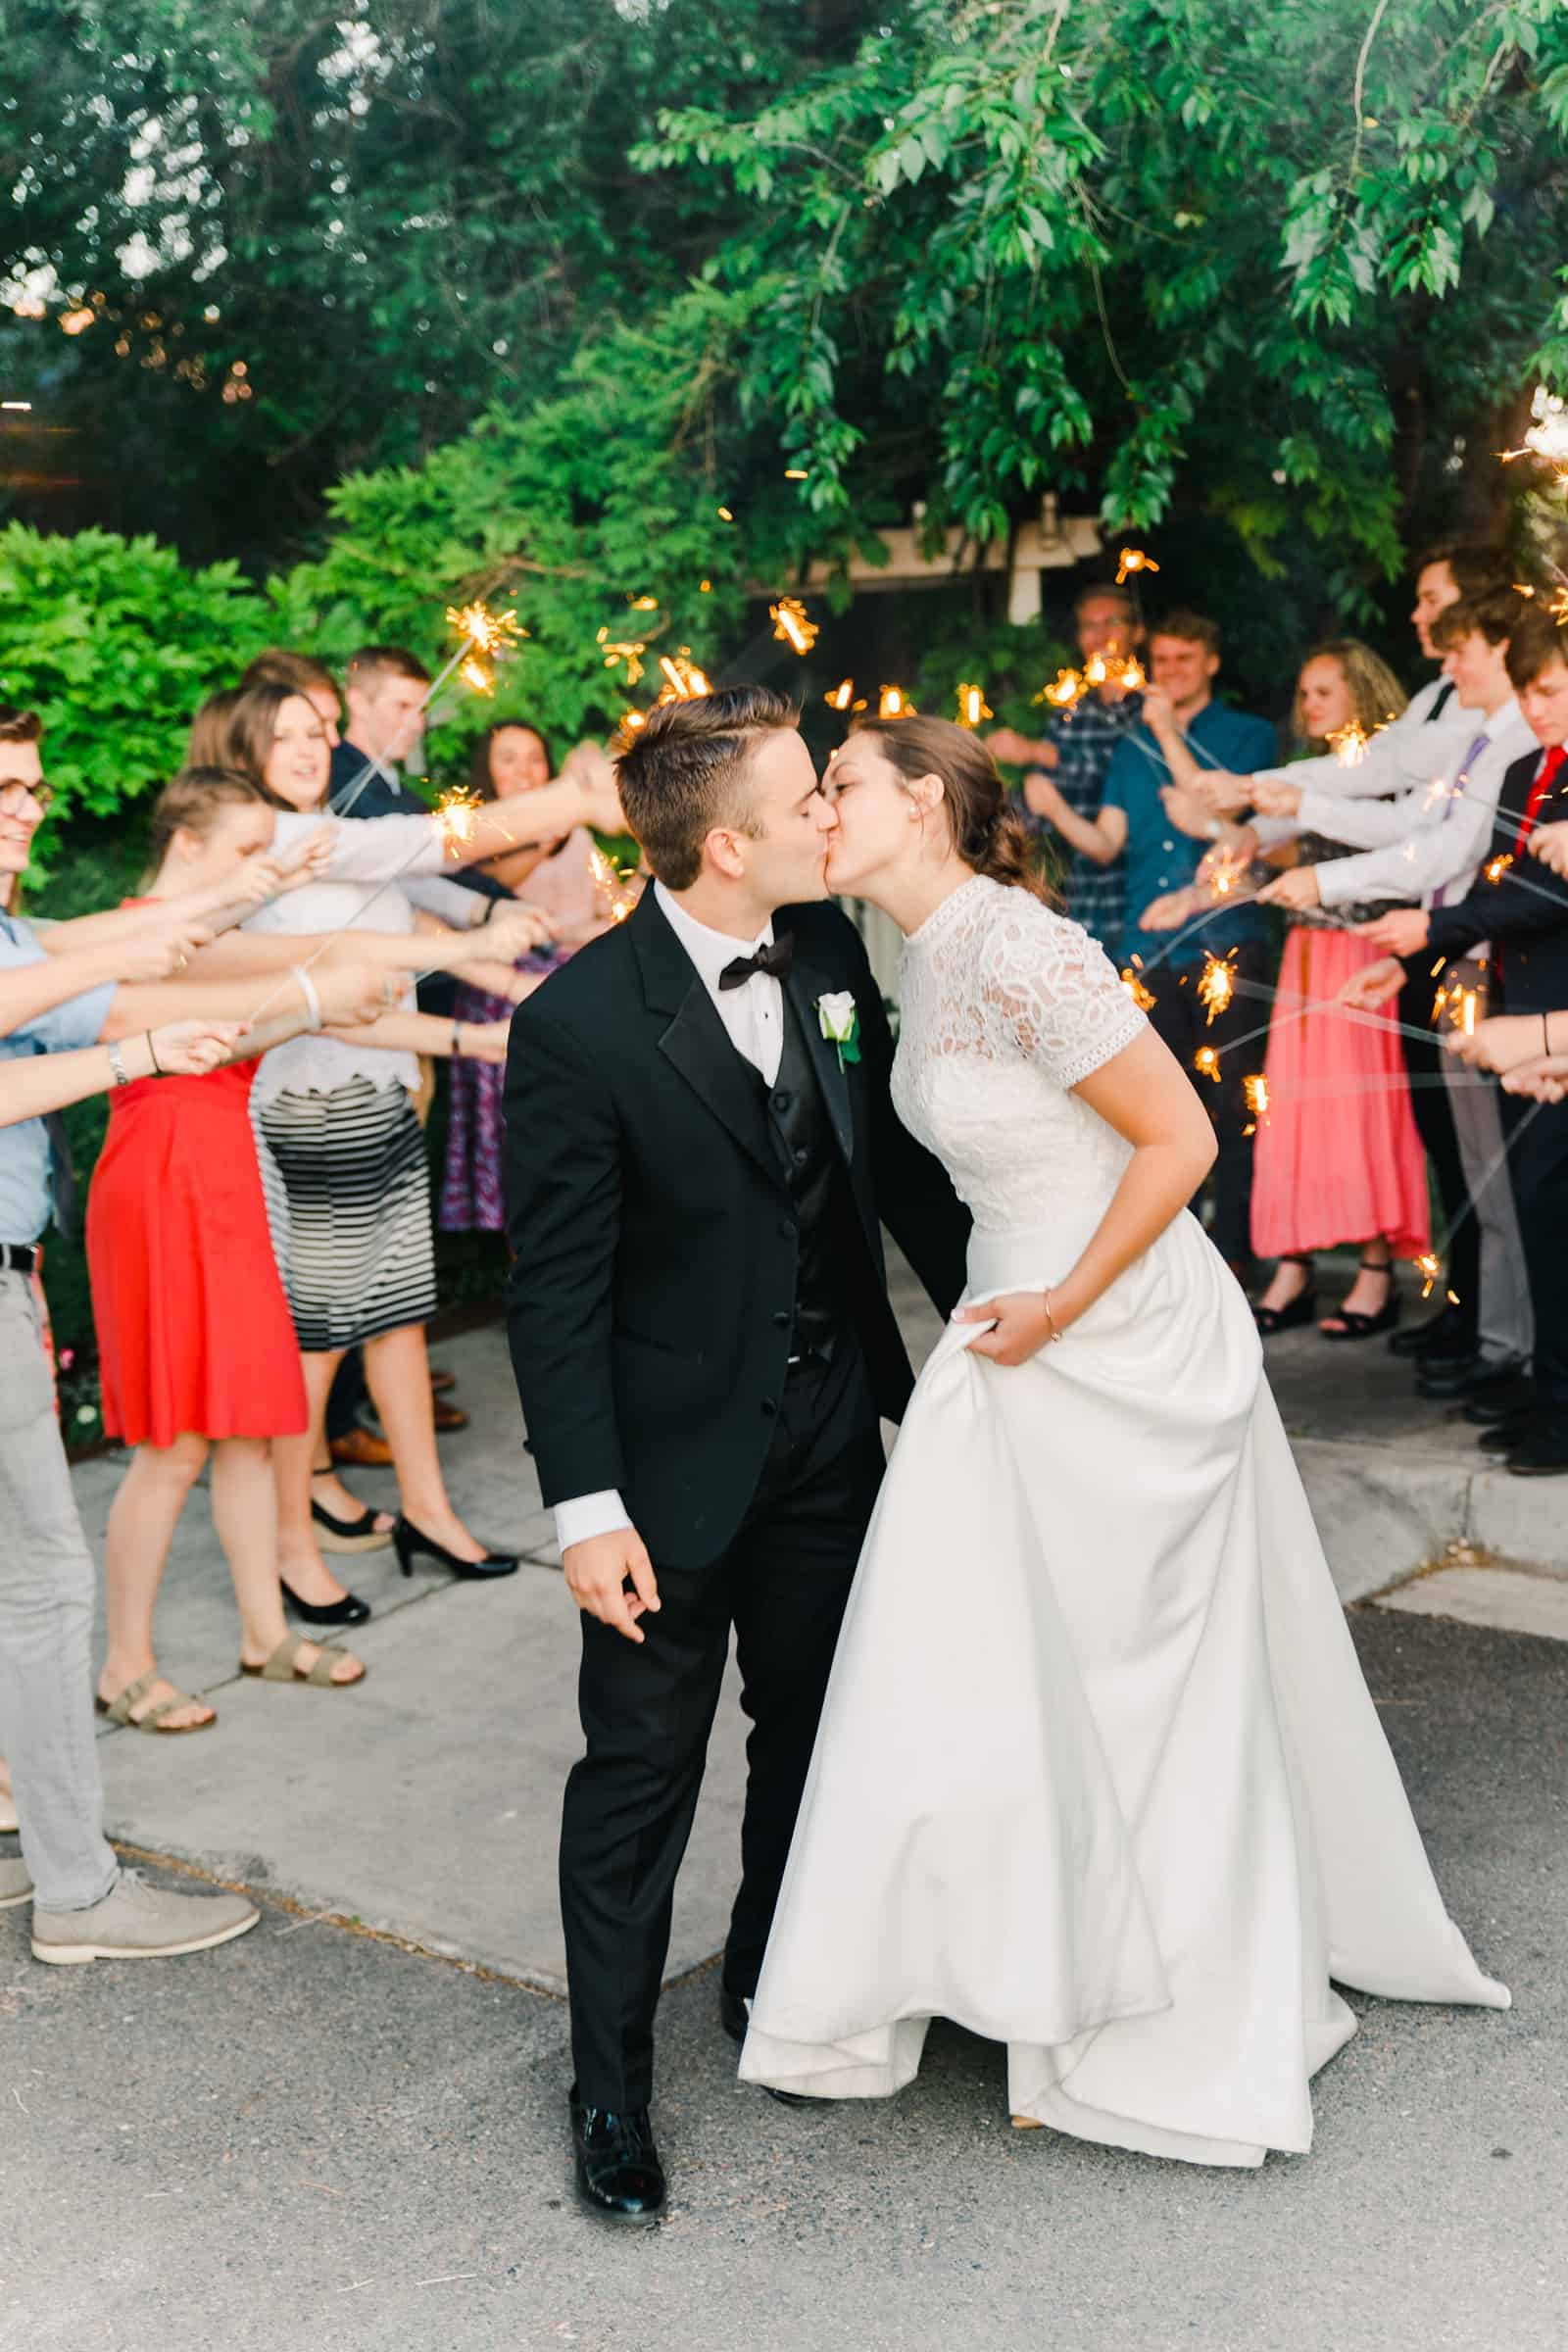 Clarion Gardens Payson Utah Wedding, bride and groom sparkler send off kiss